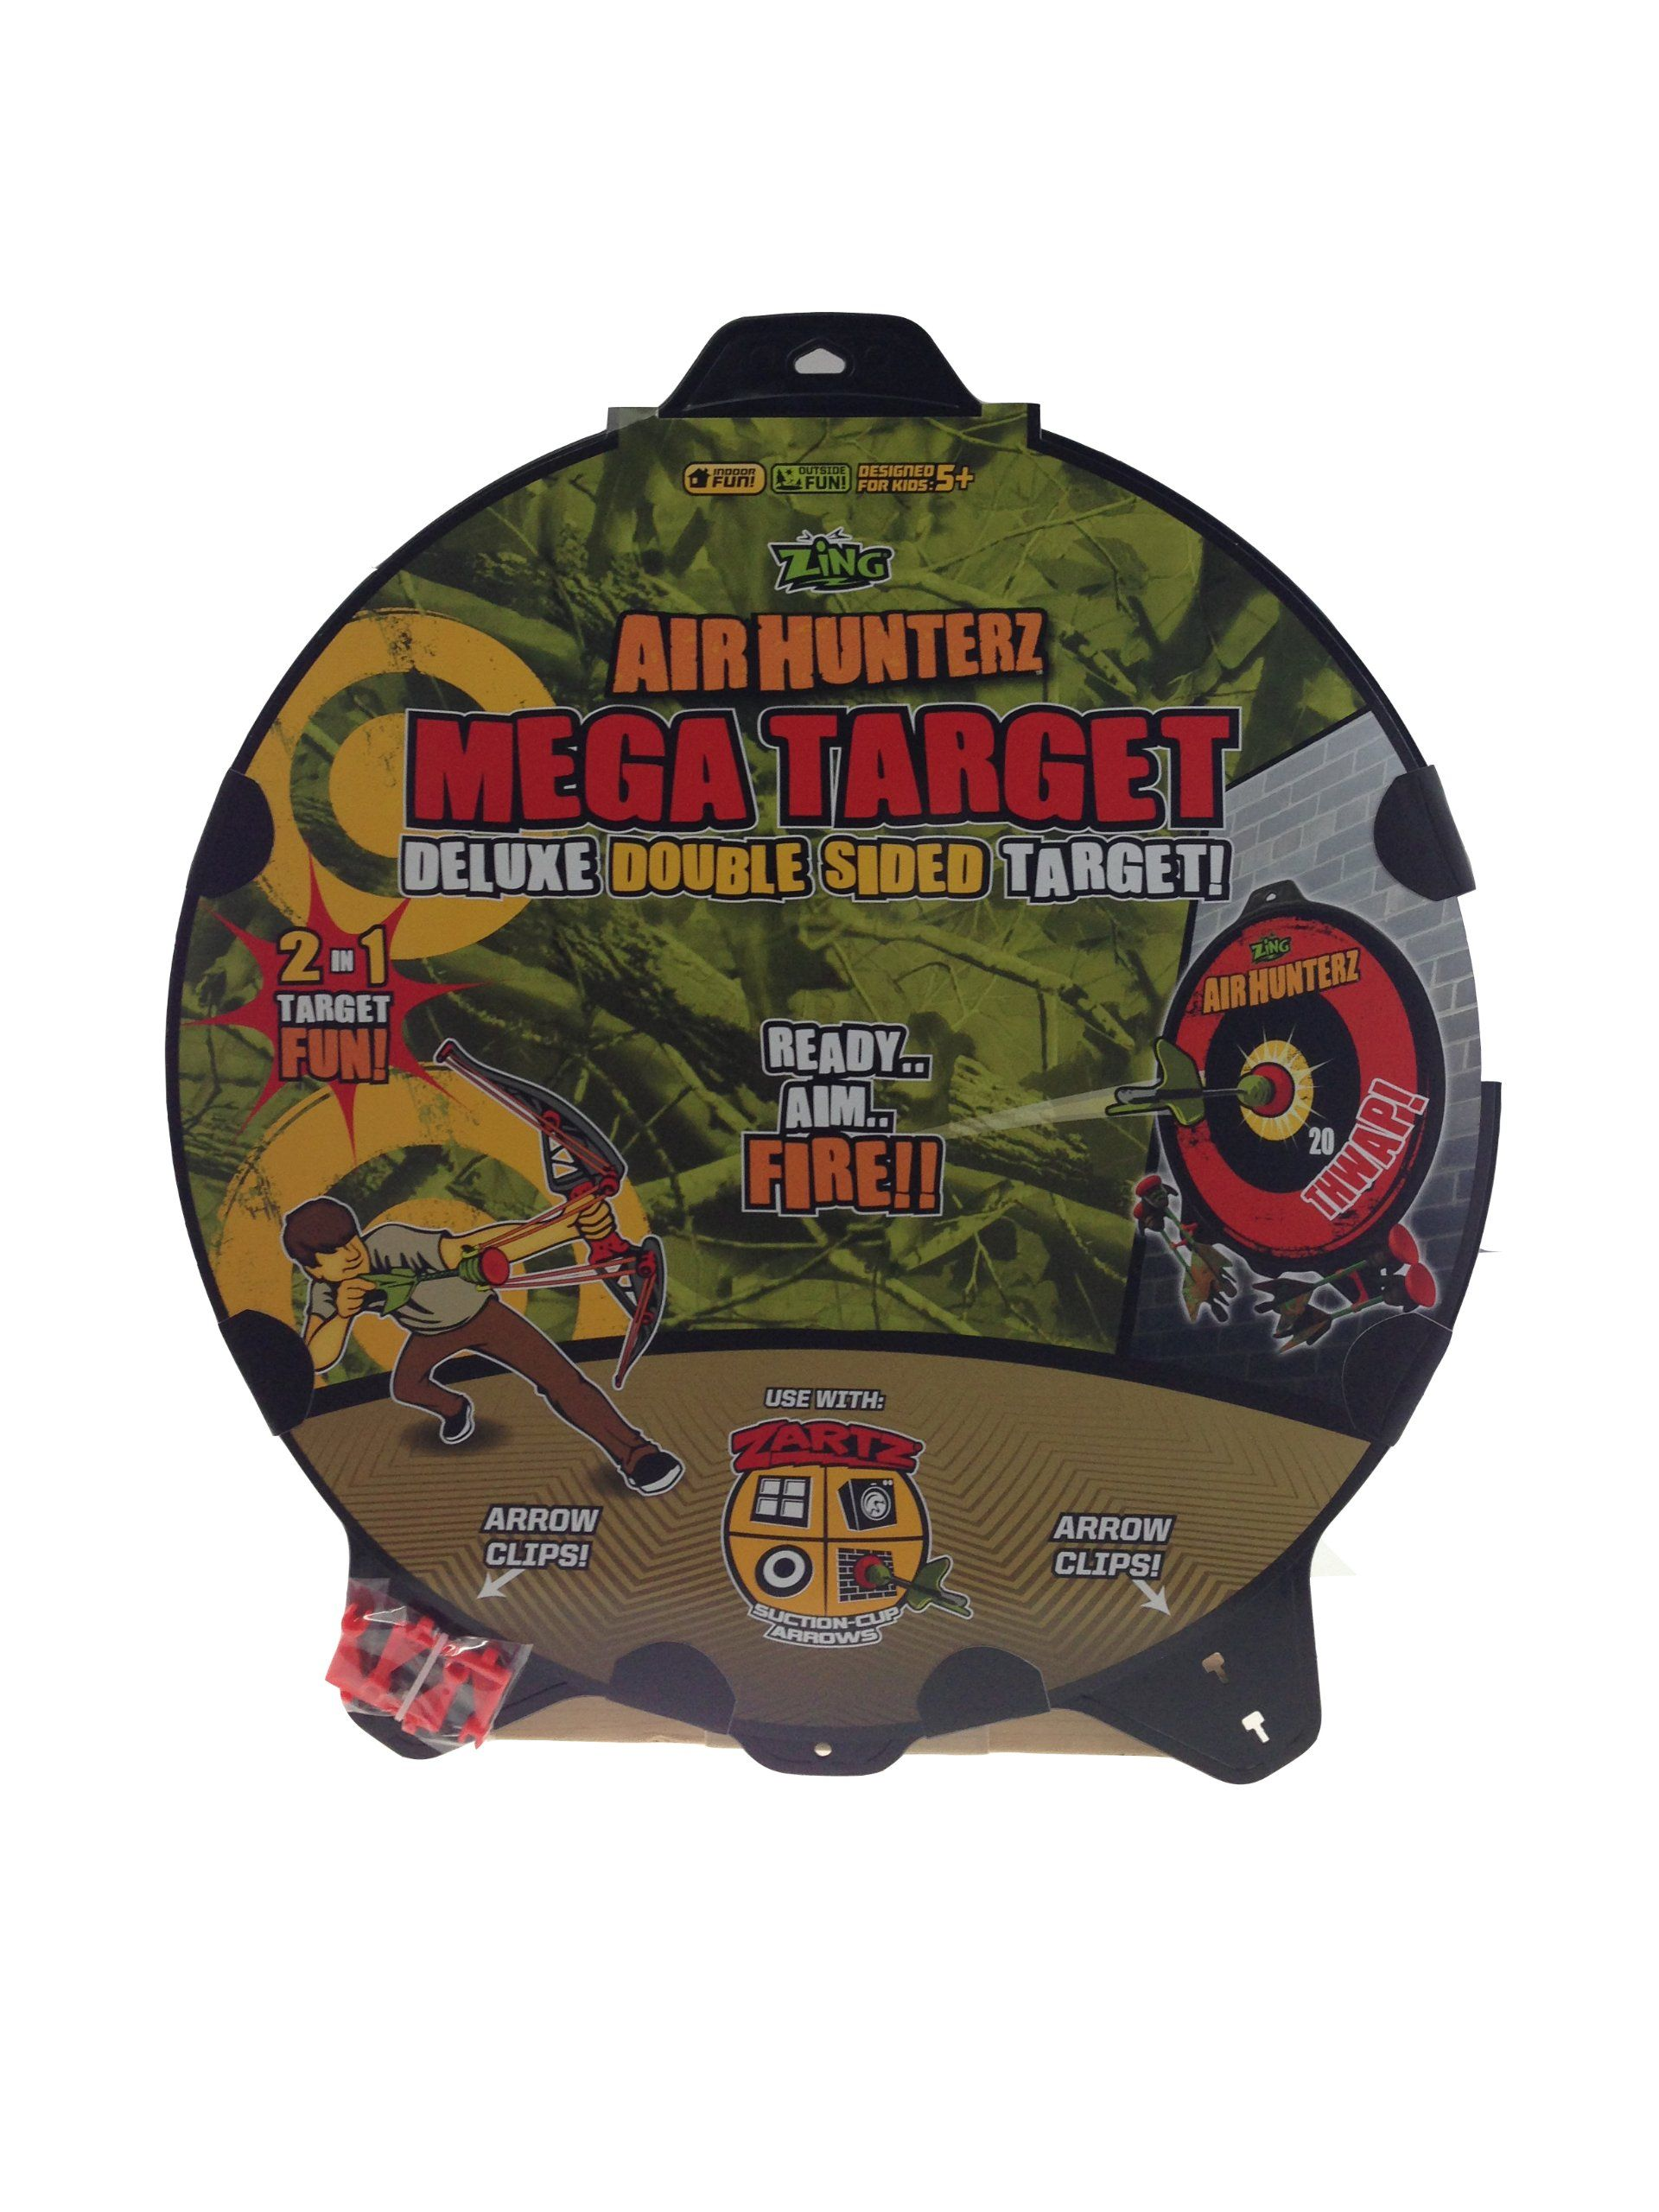 Amazon.com: Air Hunterz Mega Target by Zing: Toys & Games ...